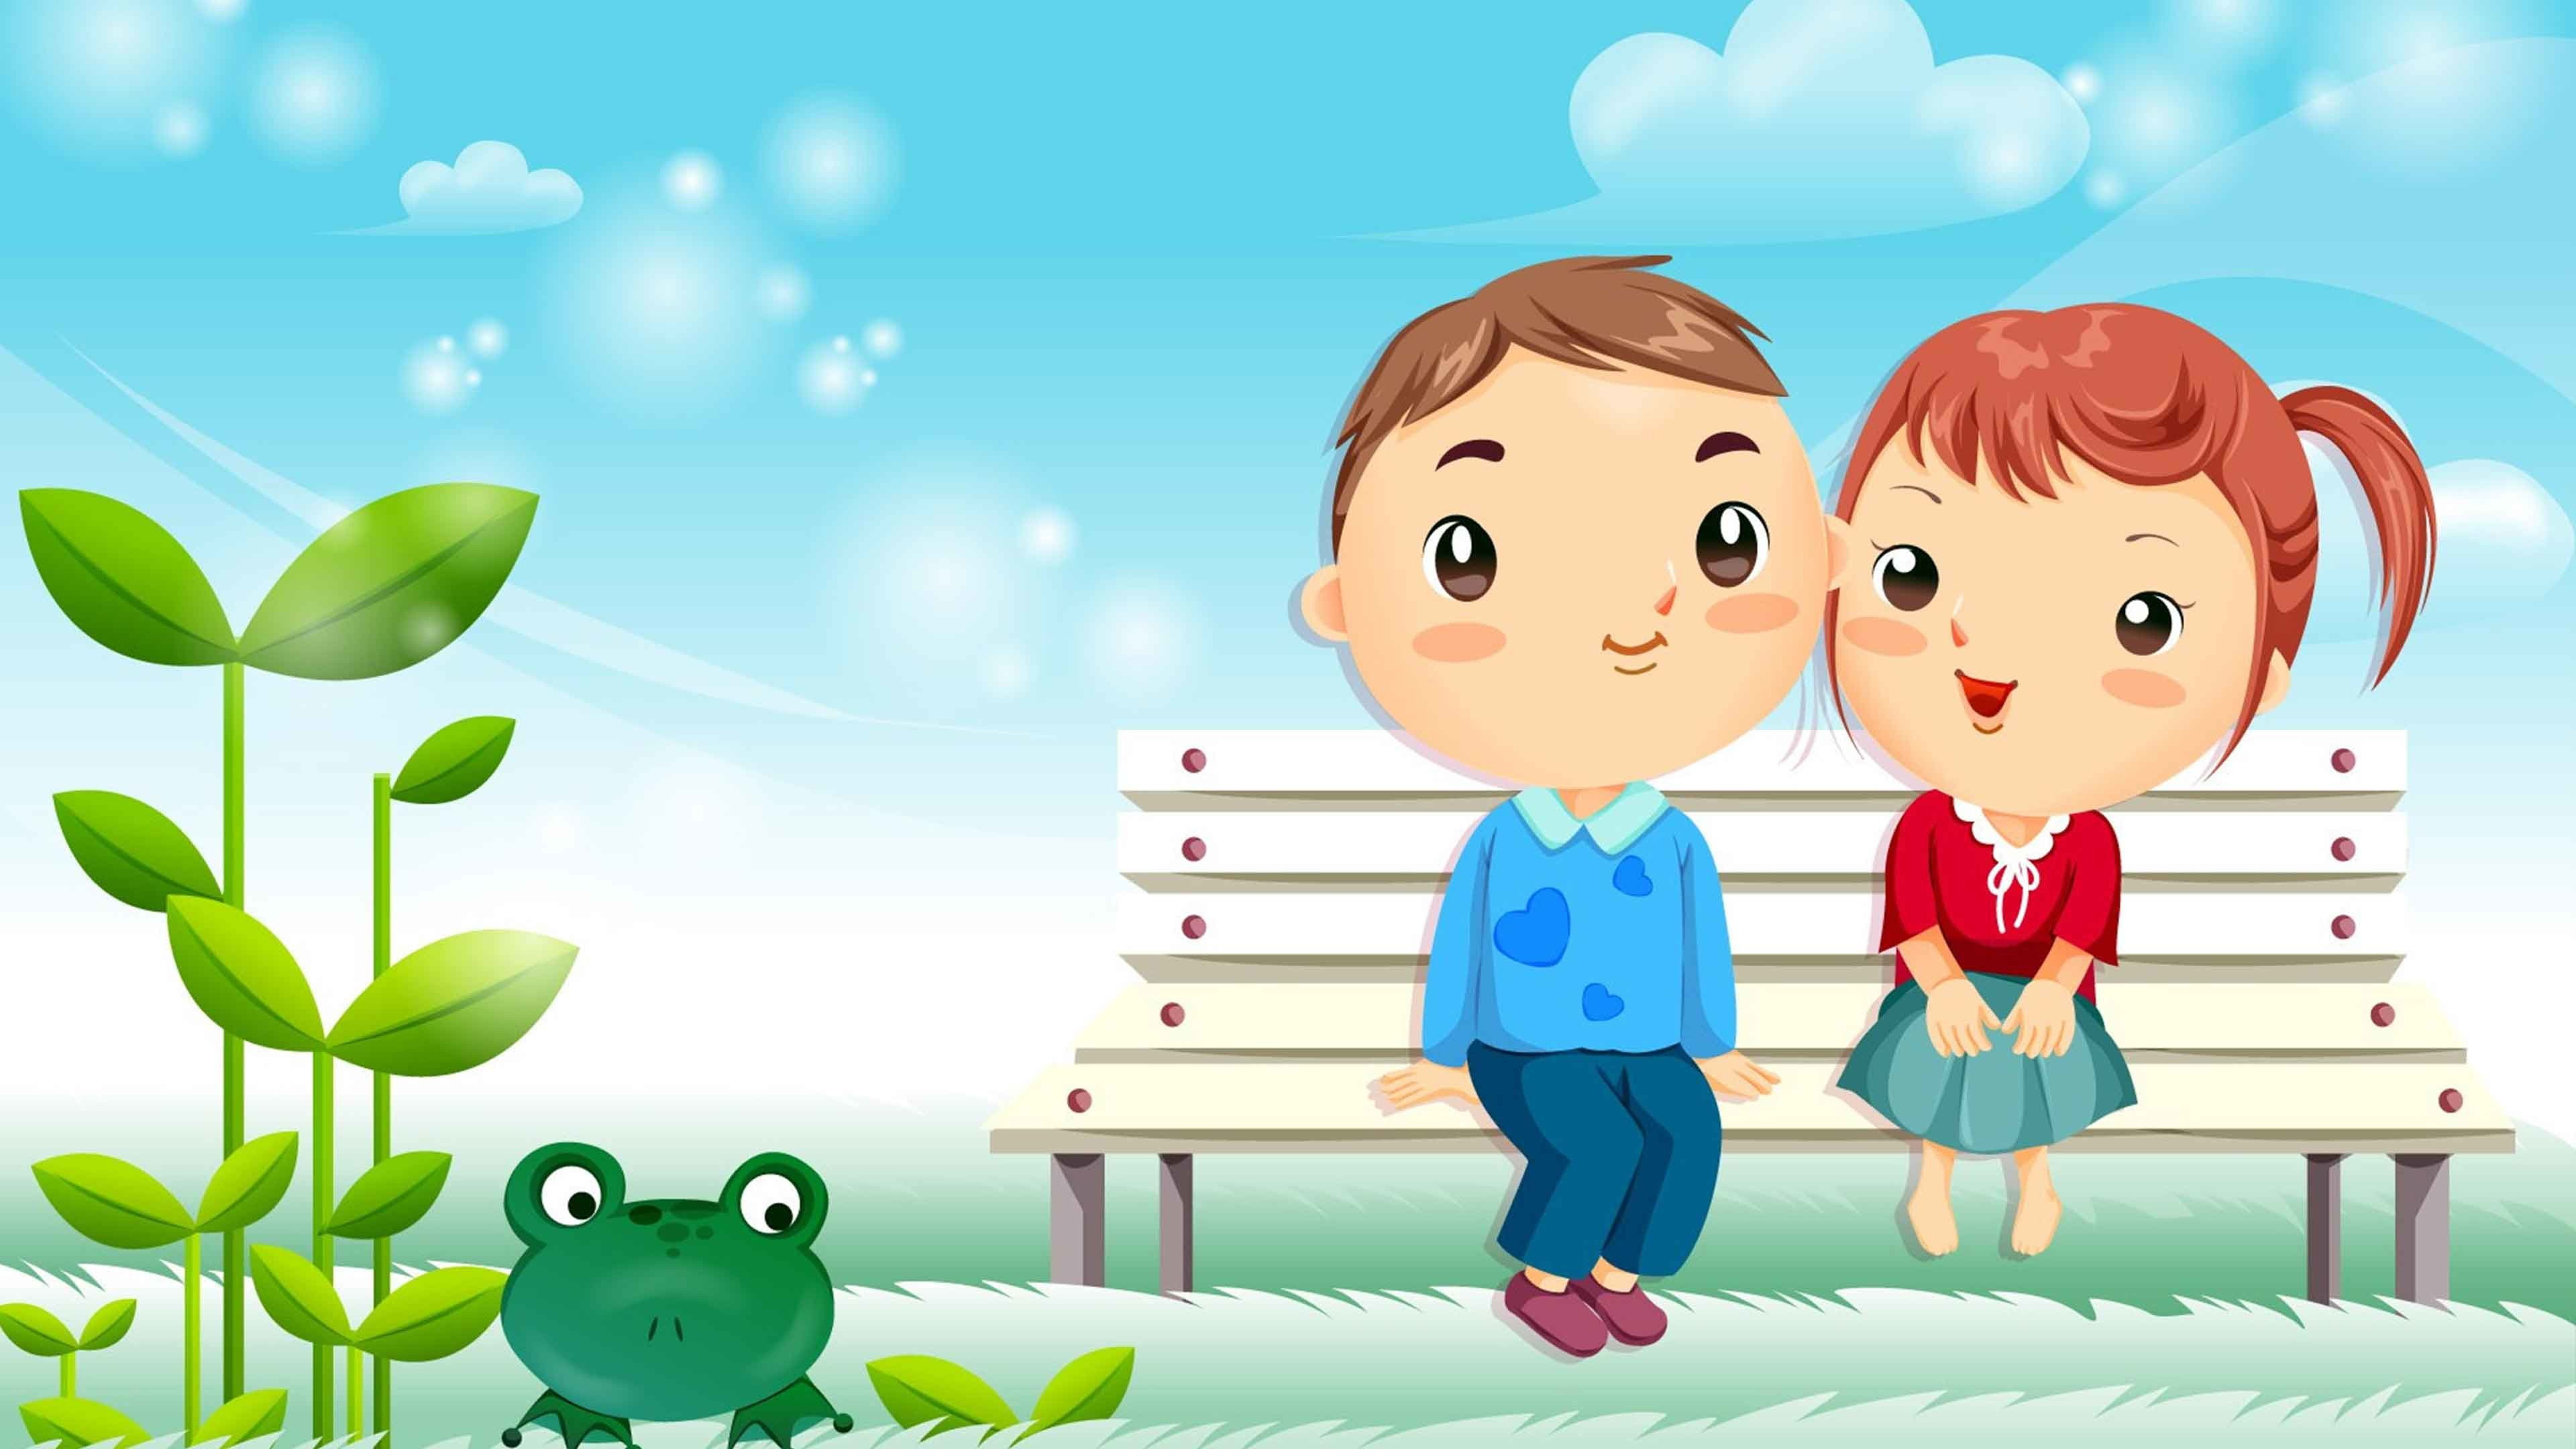 Cute cartoon wallpaper - Couple wallpaper download ...